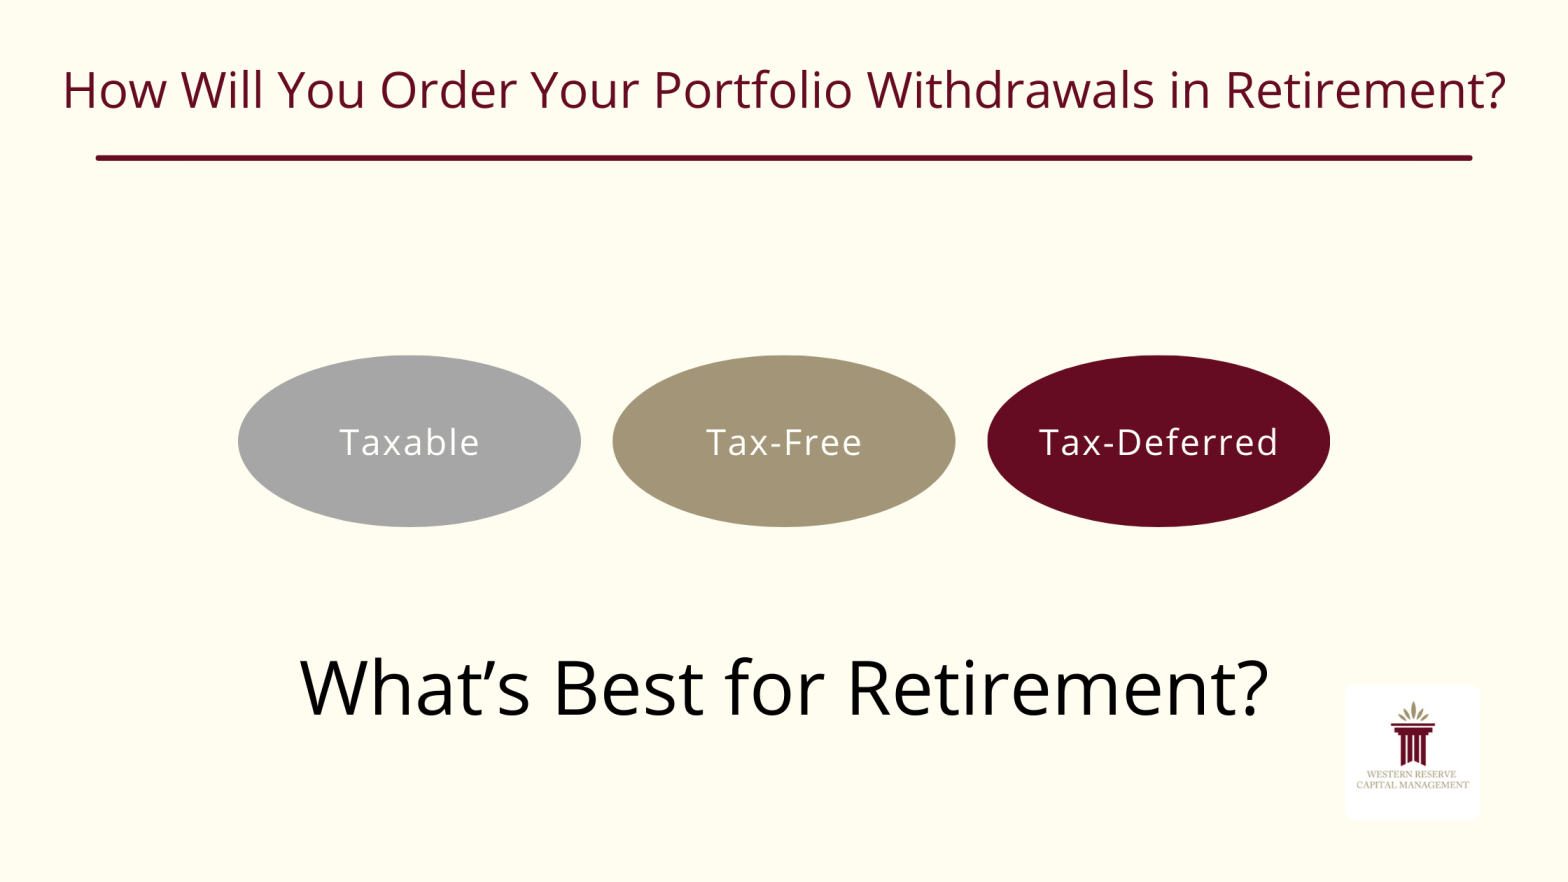 How Will You Order Your Portfolio Withdrawals in Retirement?